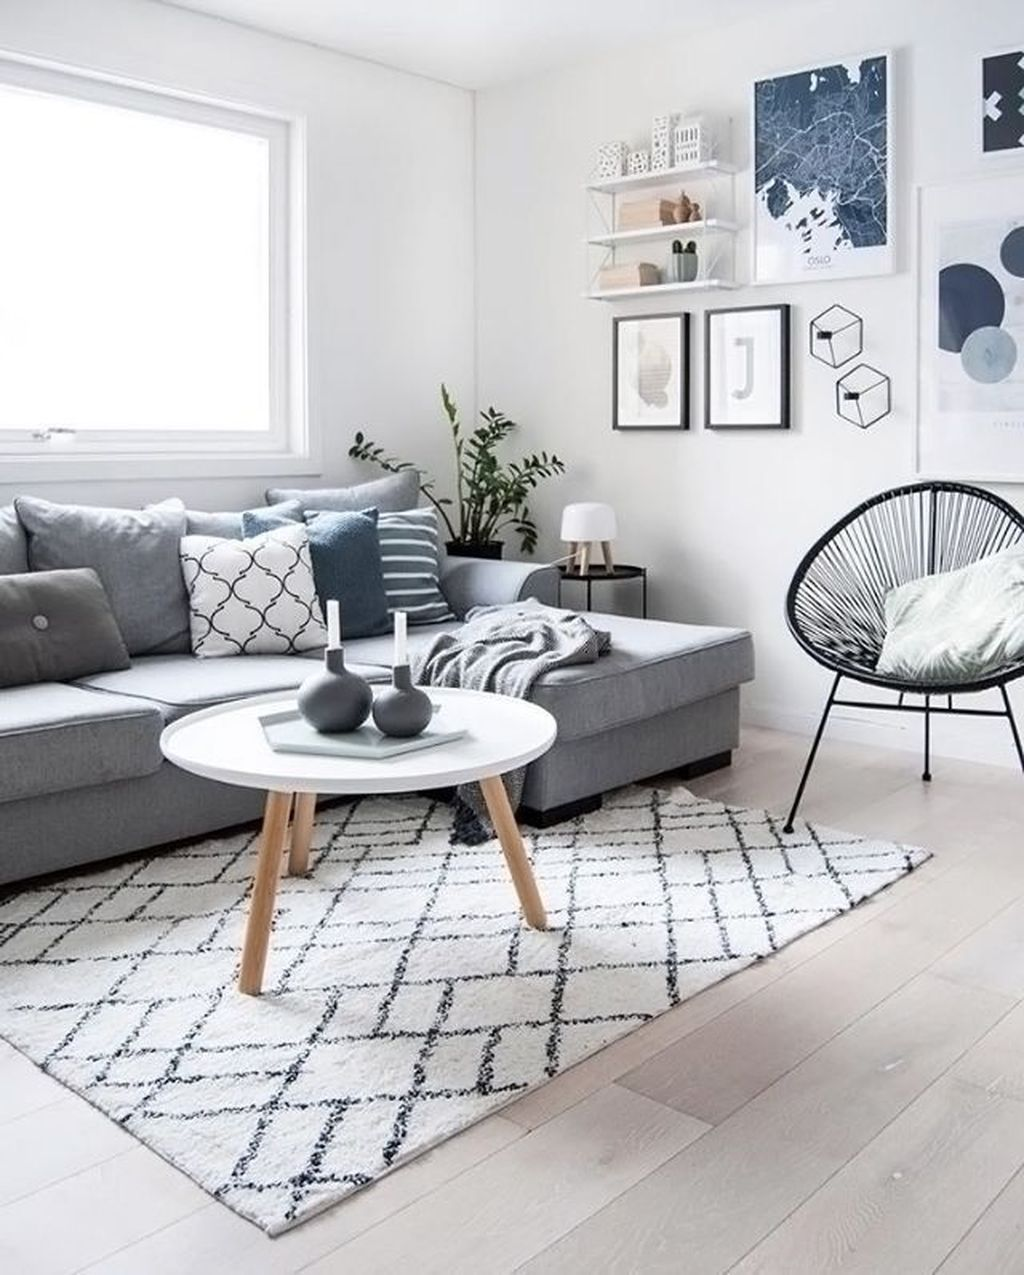 Nice 30 Affordable And Unique Living Room Shelving Ideas More At Https Www Tre Scandinavian Design Living Room Living Room Scandinavian Living Room Designs